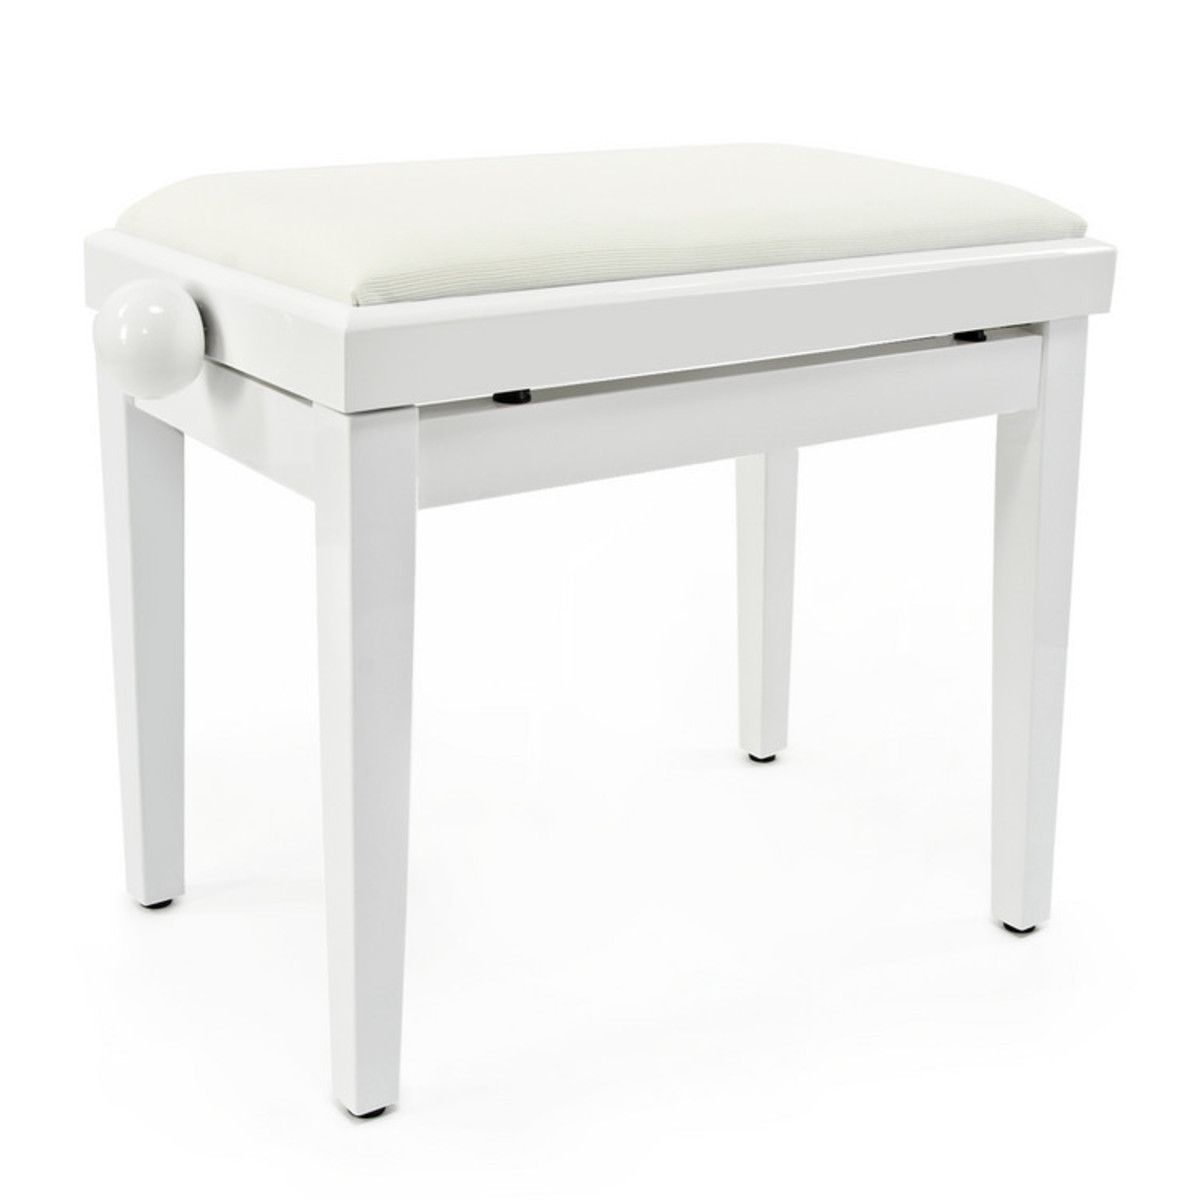 tabouret de piano r glable par gear4music blanc comme neuf. Black Bedroom Furniture Sets. Home Design Ideas